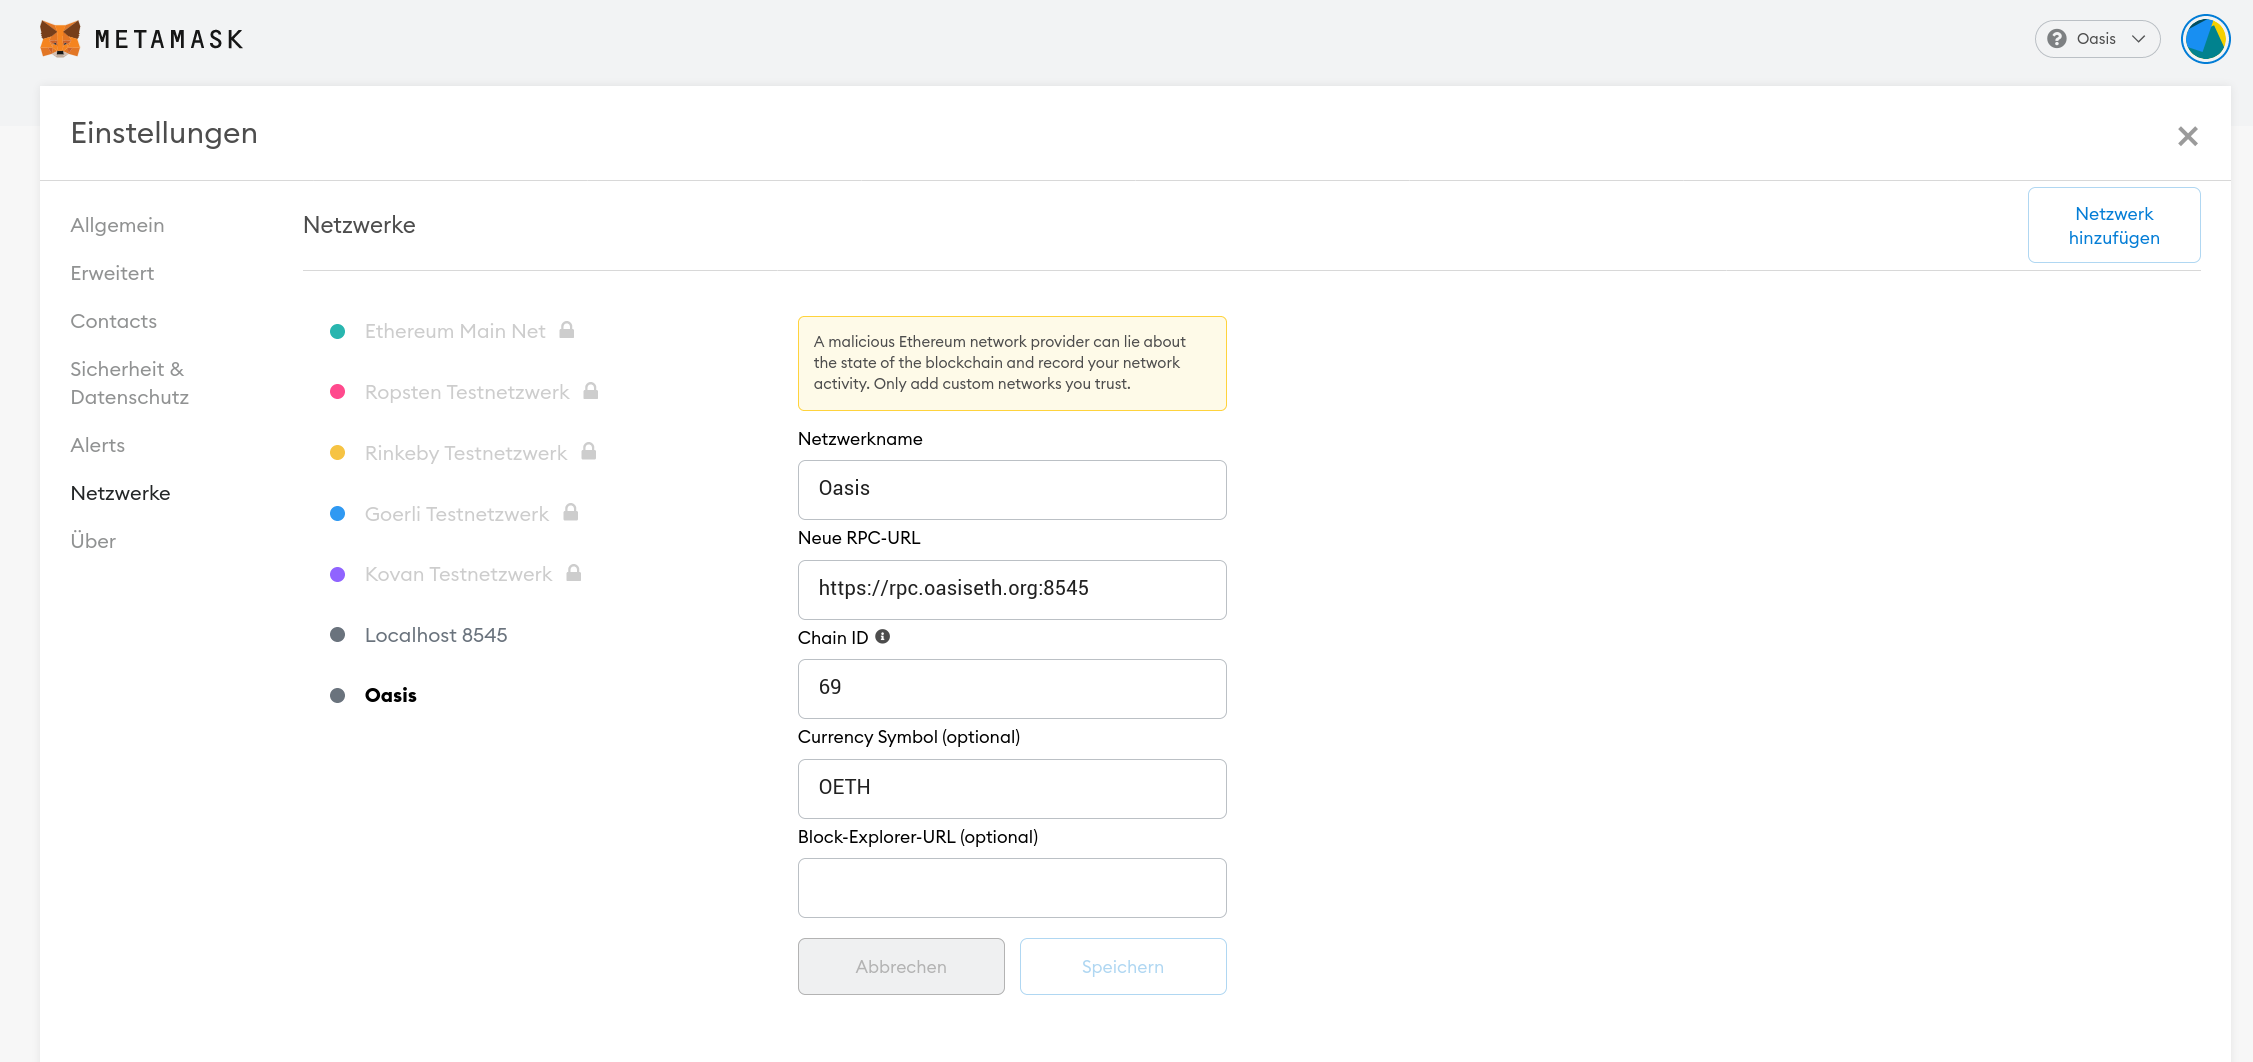 Metamask settings overview